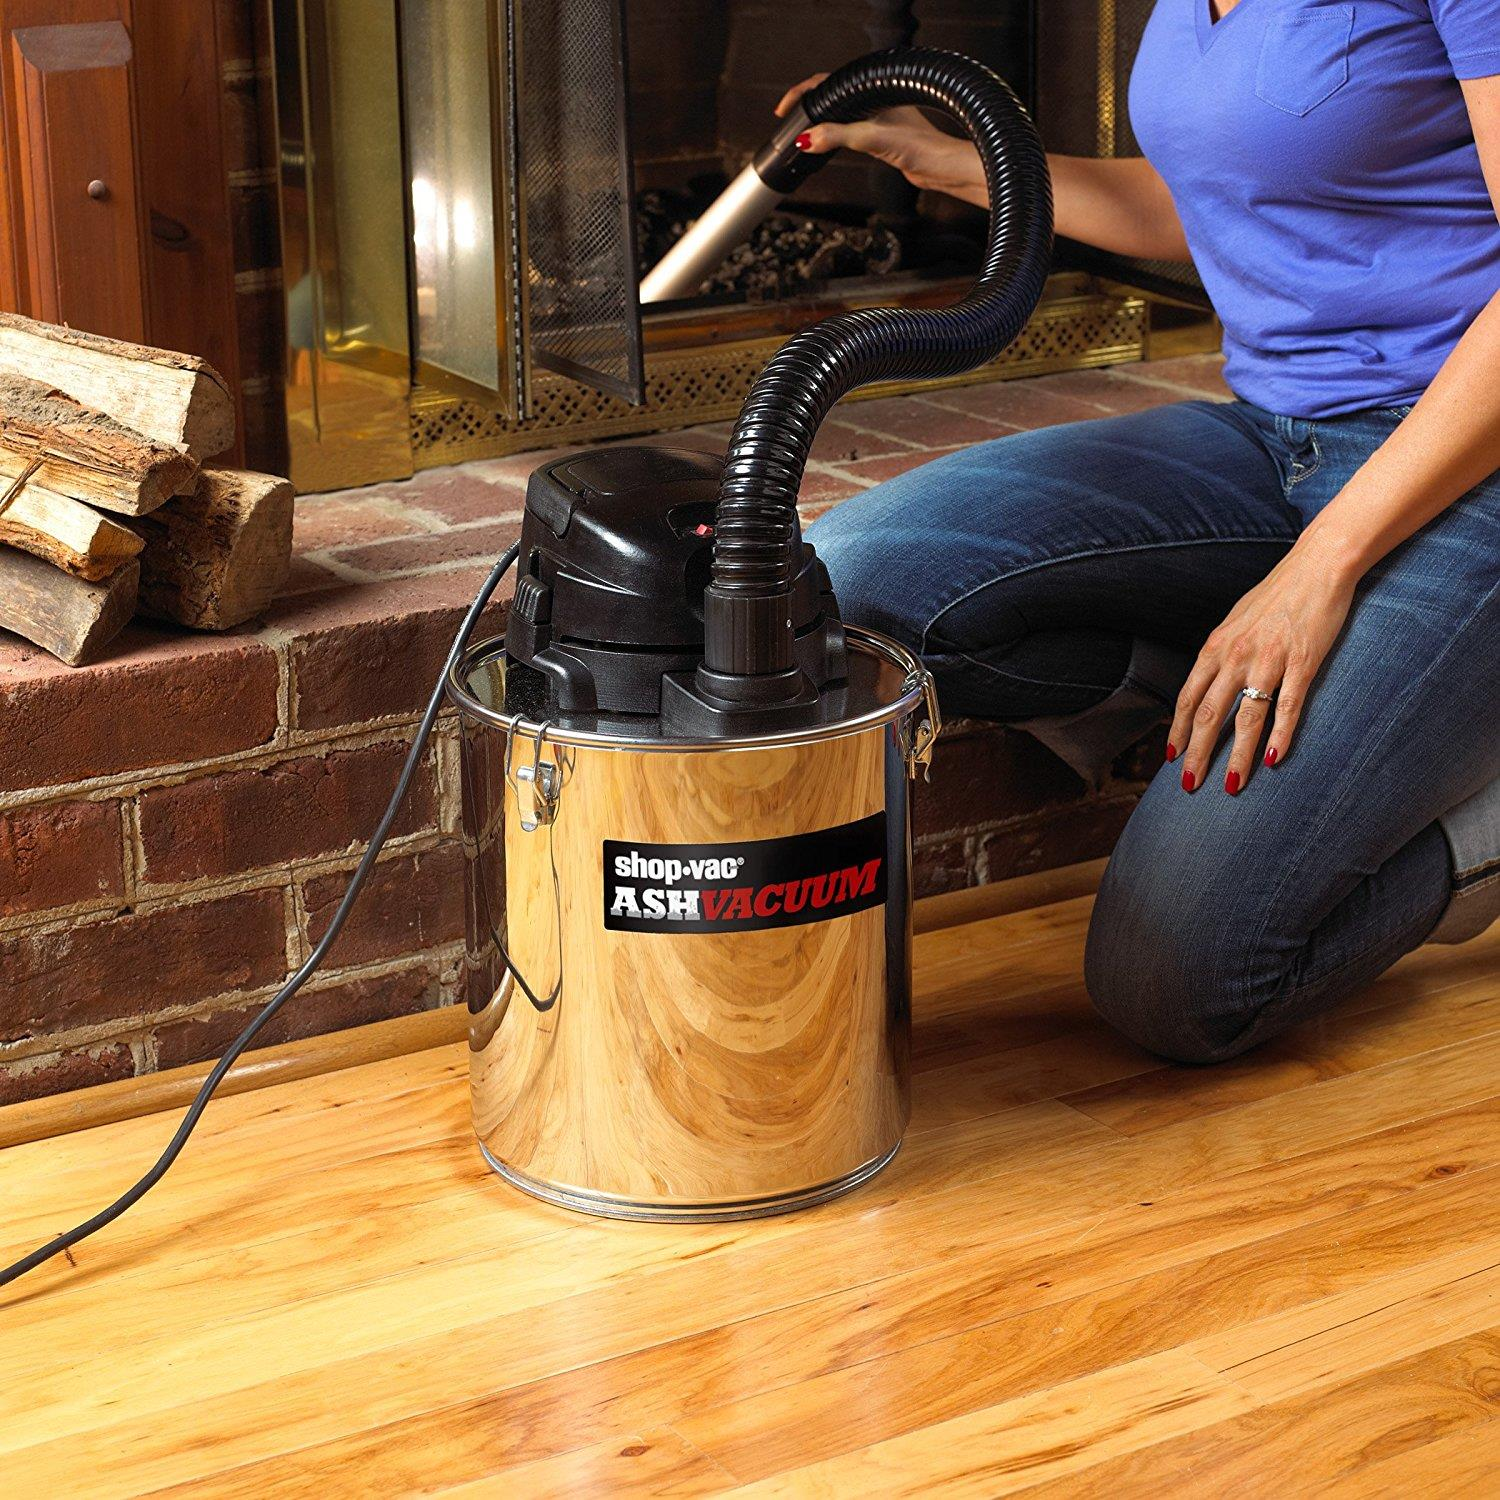 Shop vac ash vacuum cleaner designed for